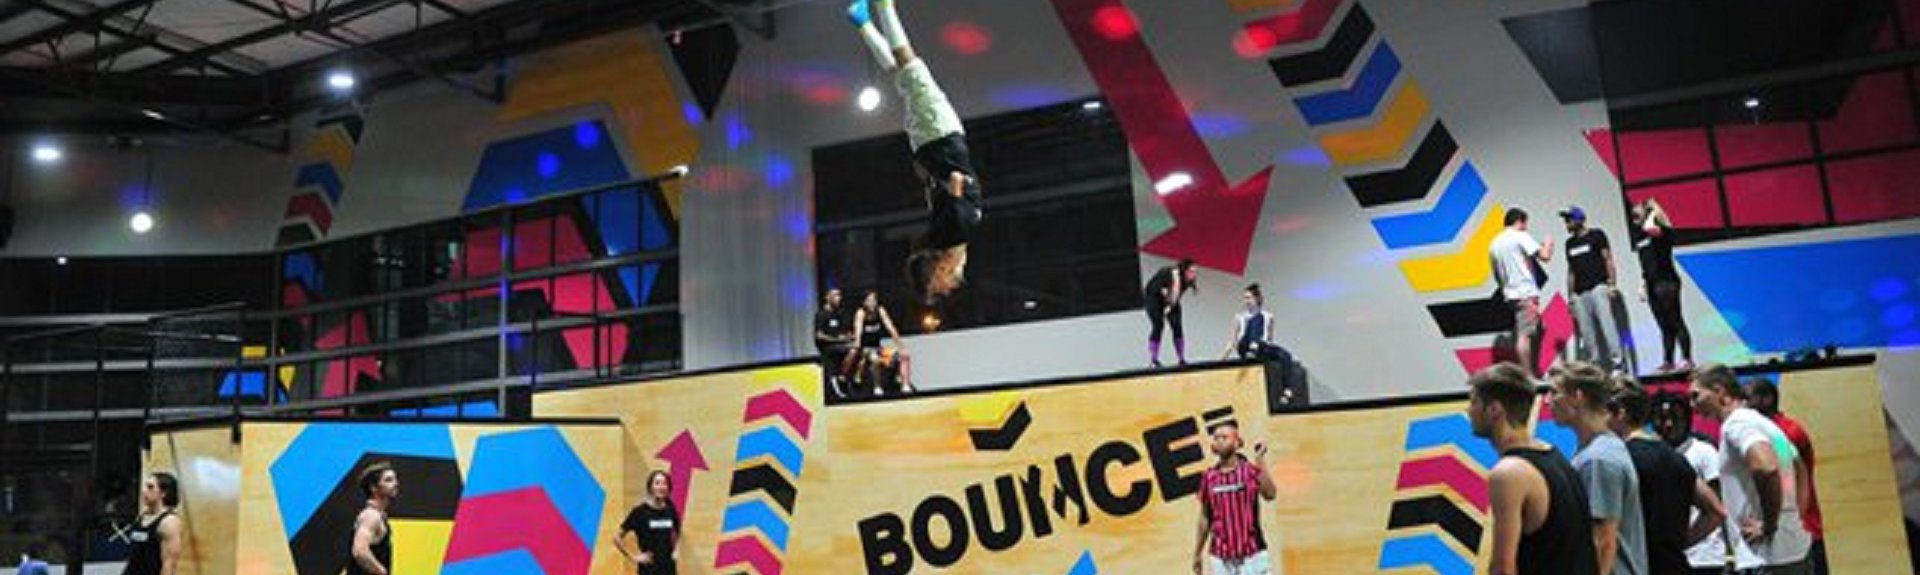 Bounce Trampoline Park | Johannesburg | Kids Indoor Party Venue